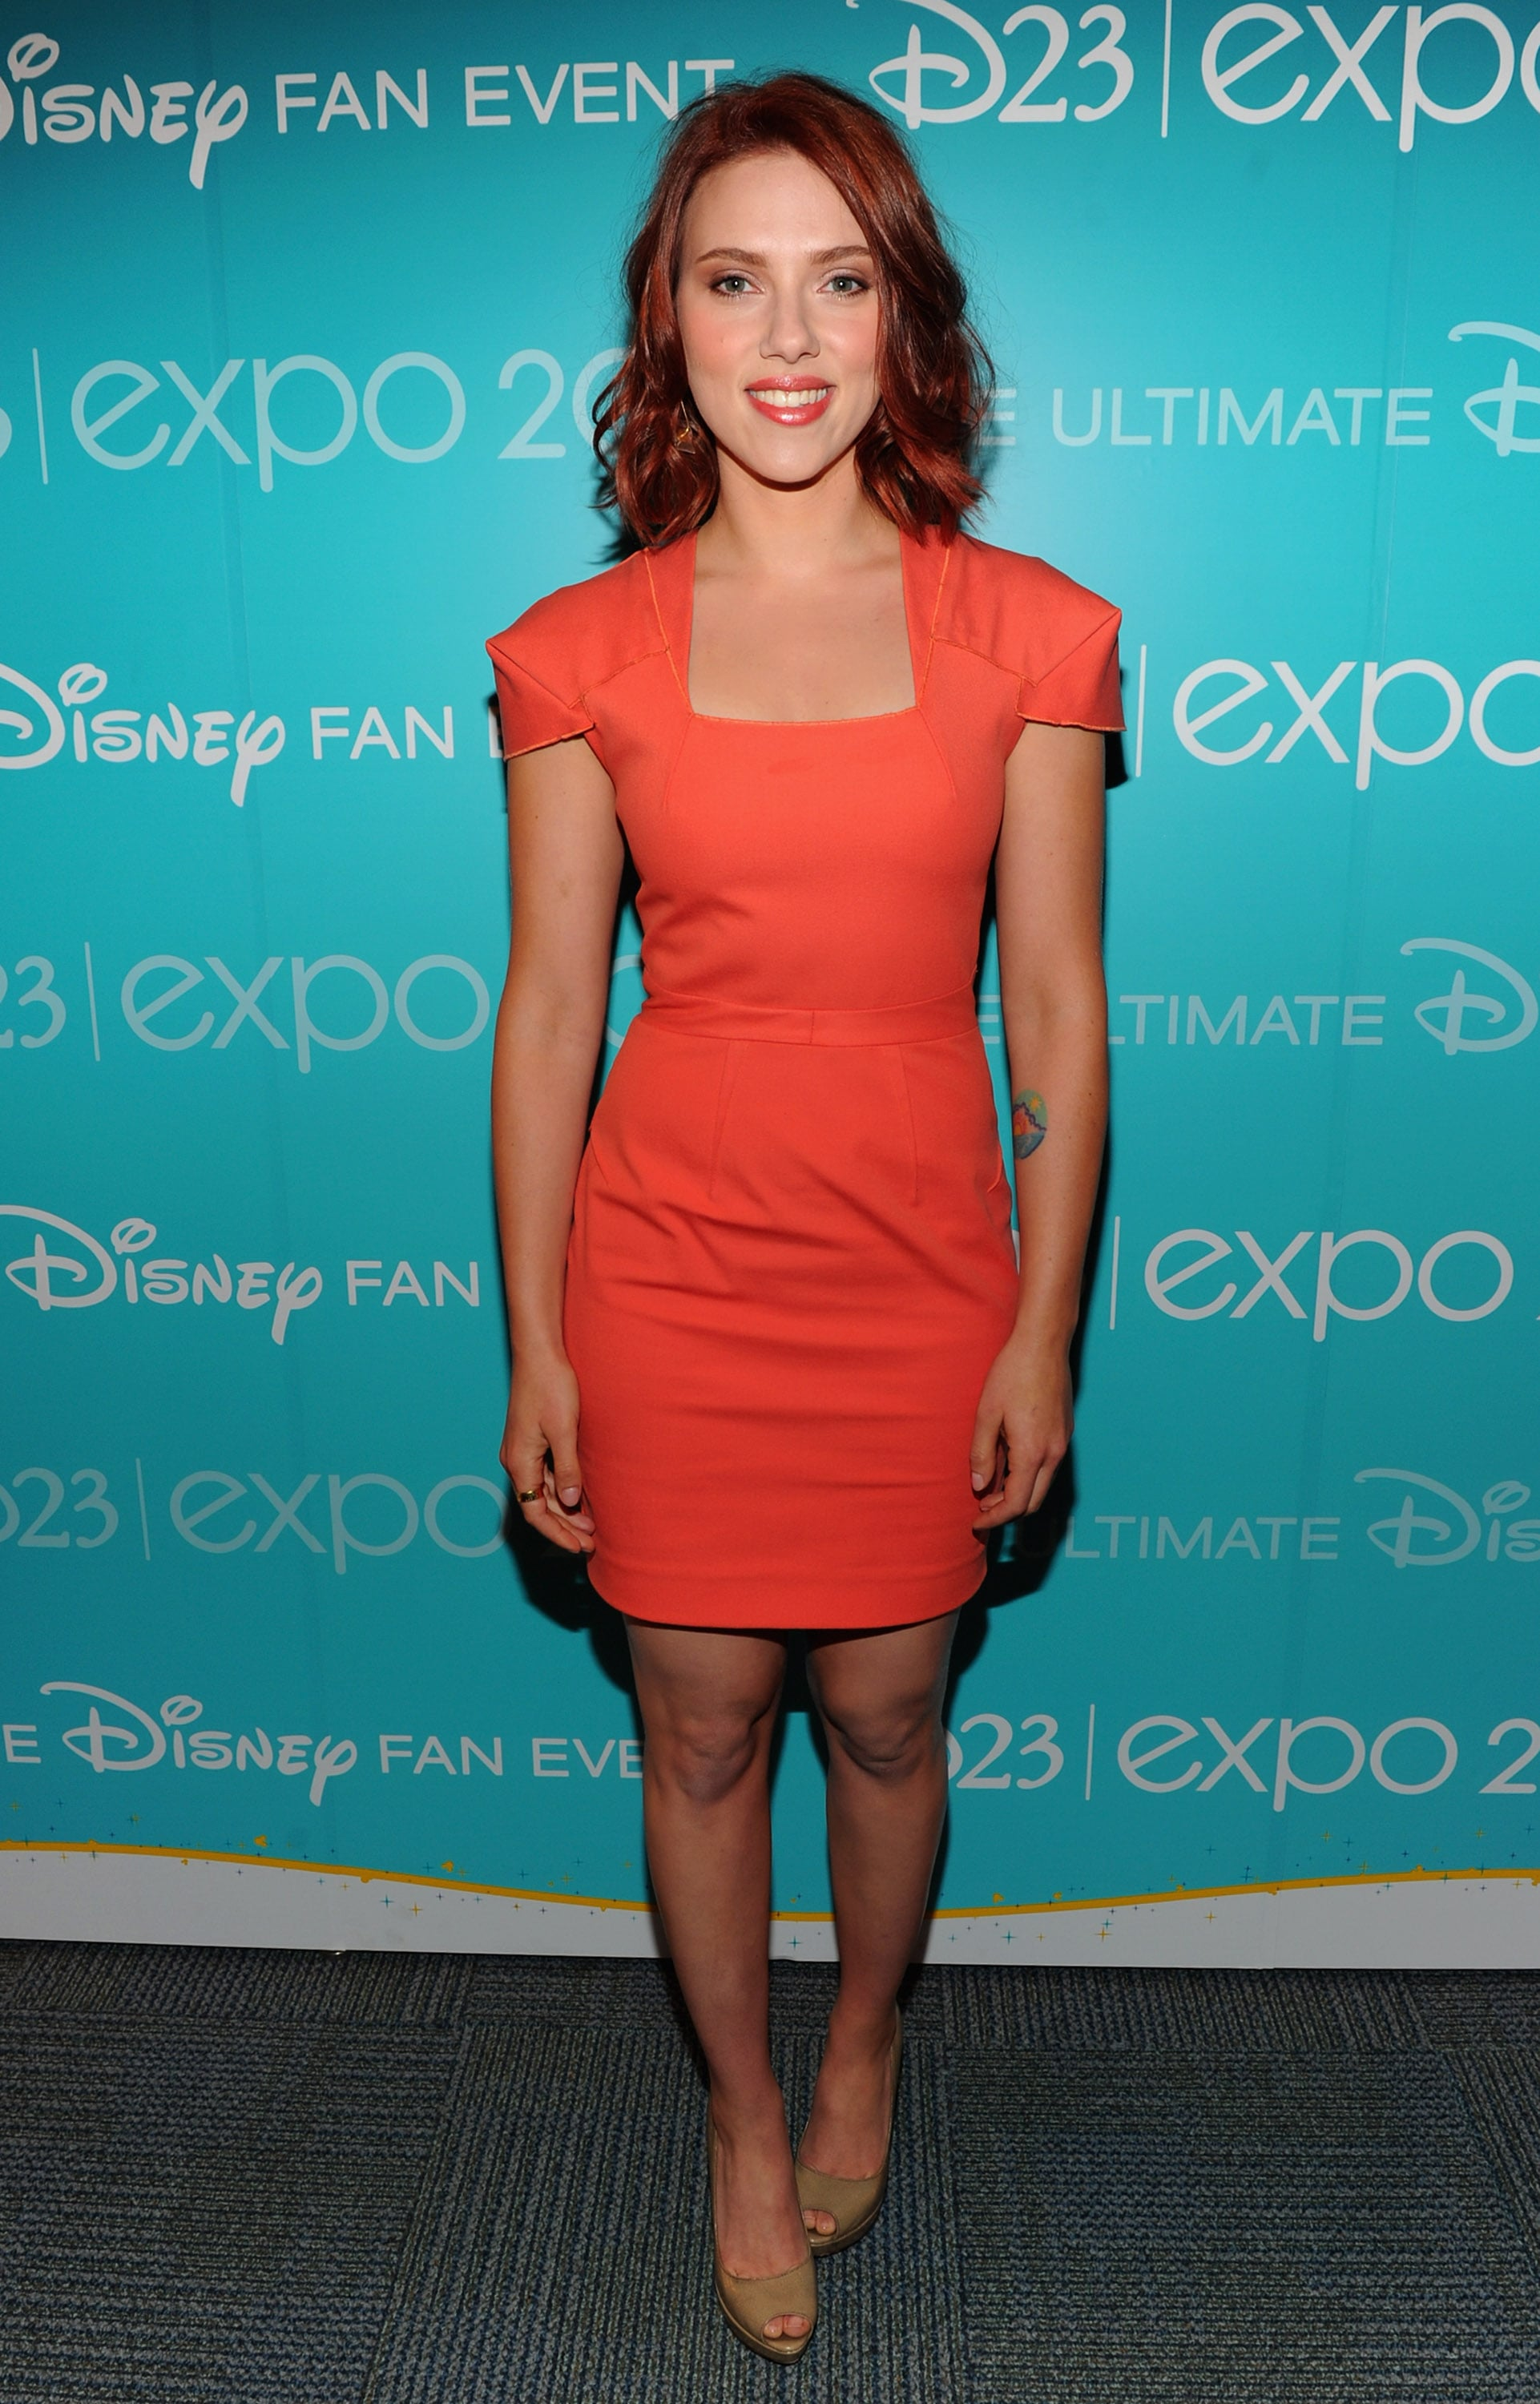 Scarlett Johansson lit up the room in a coral minidress.